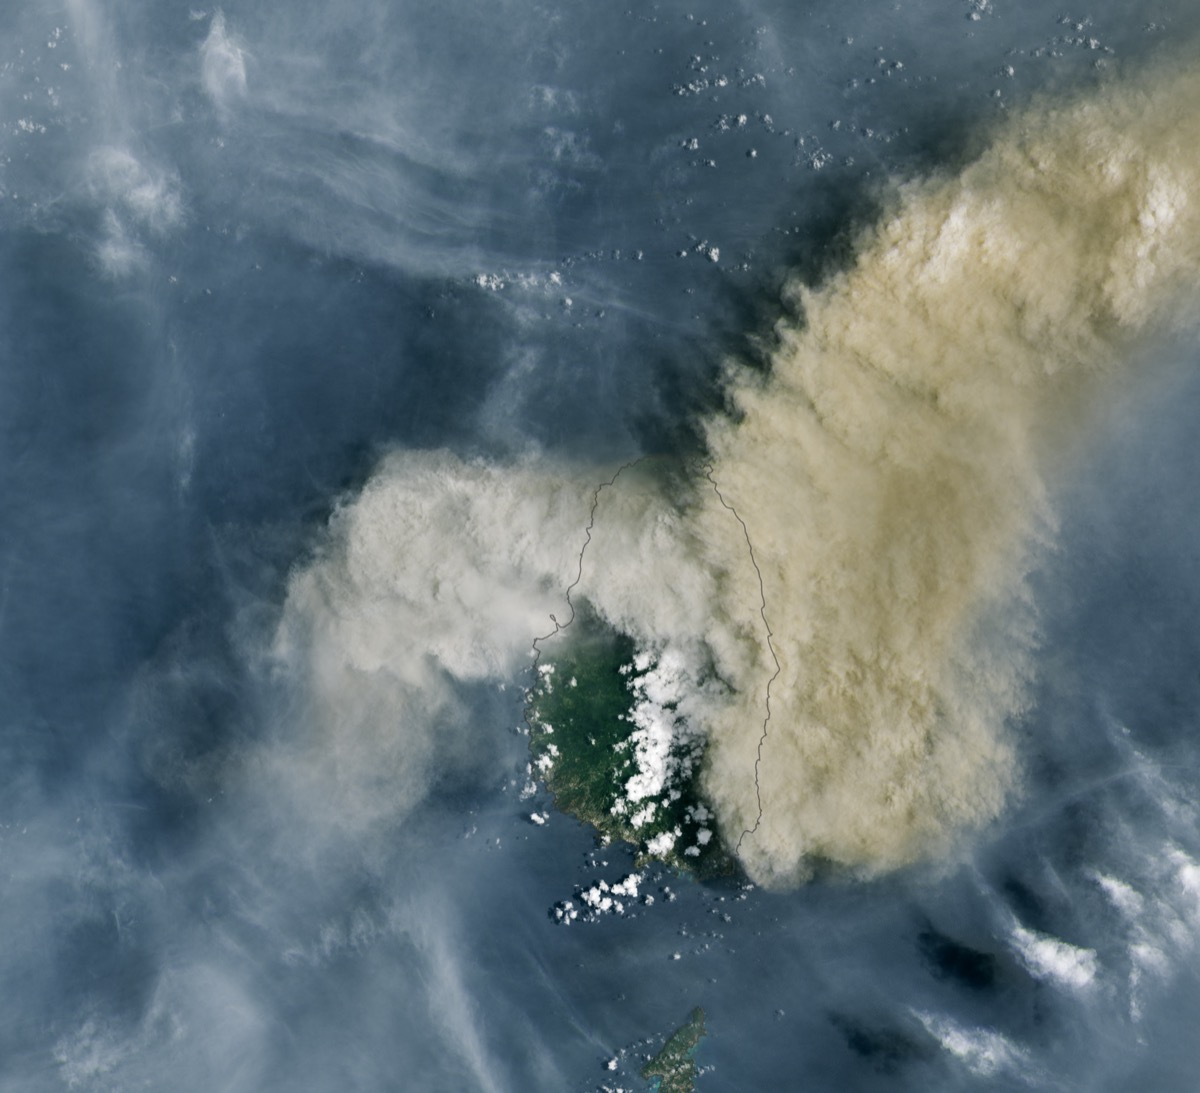 a satellite image of st vincent island, mostly shrouded by the plume of a volcano, drifting off to the right